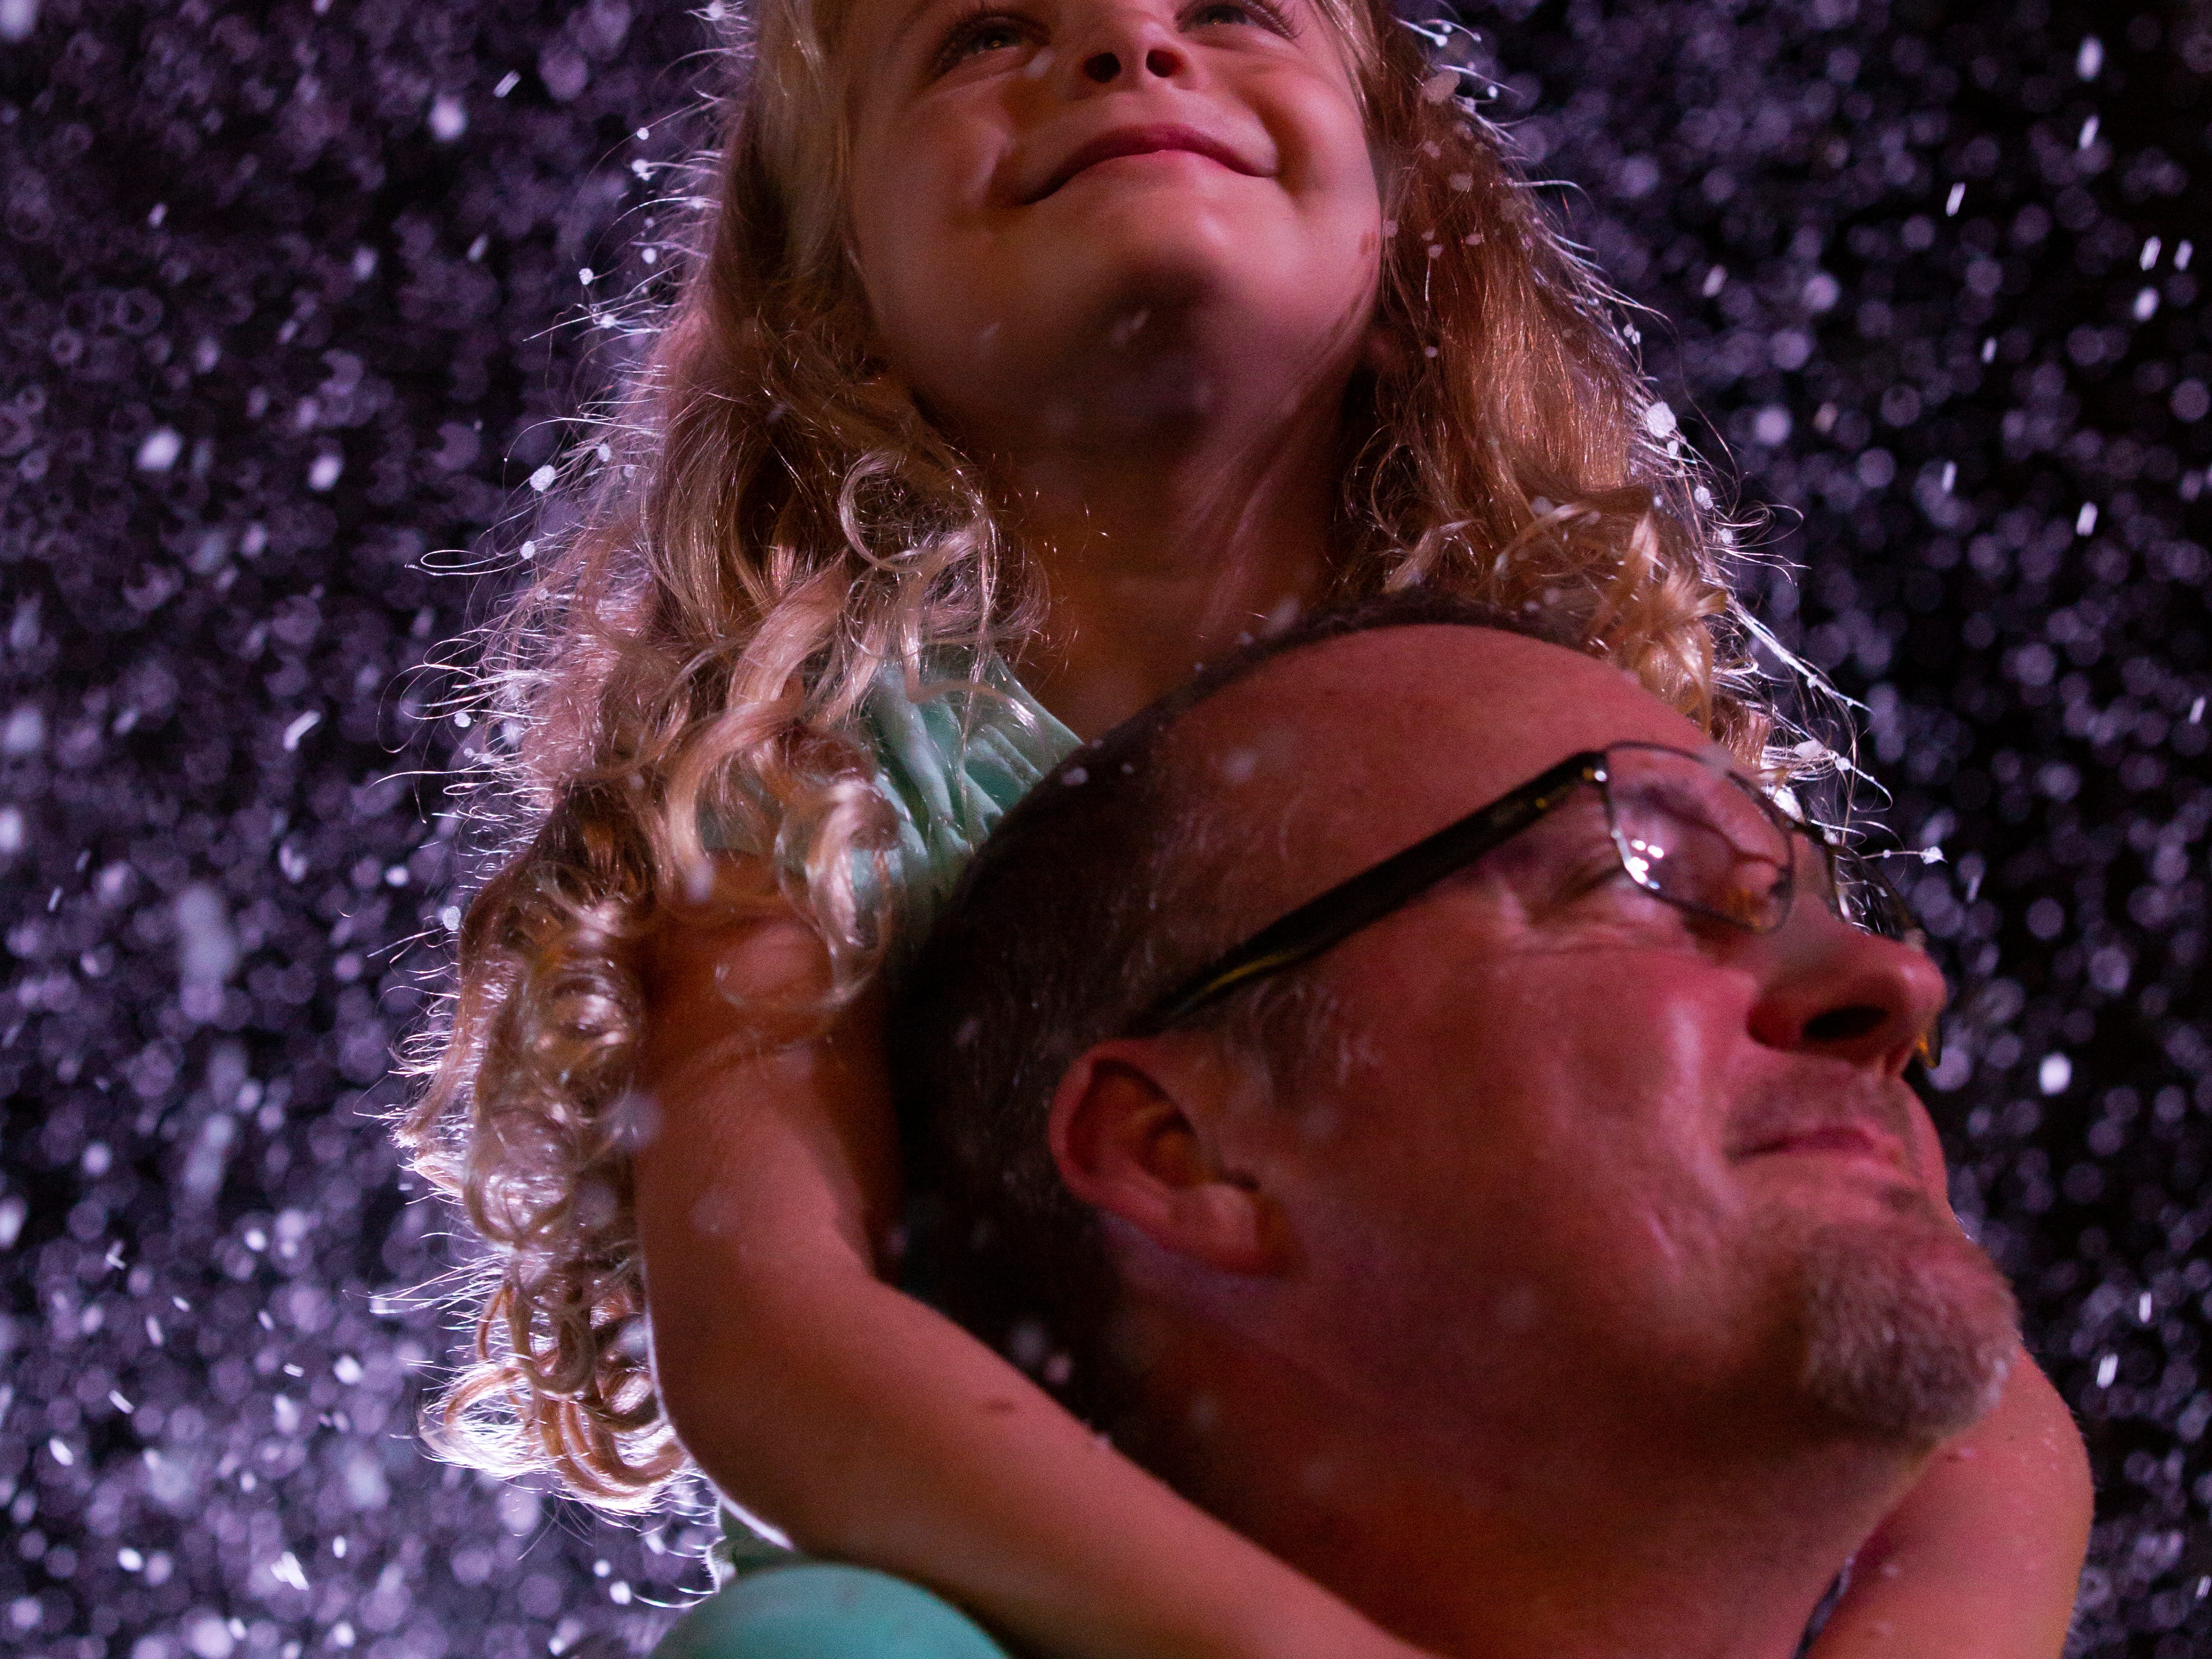 Four-year-old, Ashelynn Goins sits on her father, David Goins shoulder and enjoys faux winter blizzard during the 19th annual Holiday in the Park on Dec. 4, 2018 at the Riverside Park in Bonita Springs.